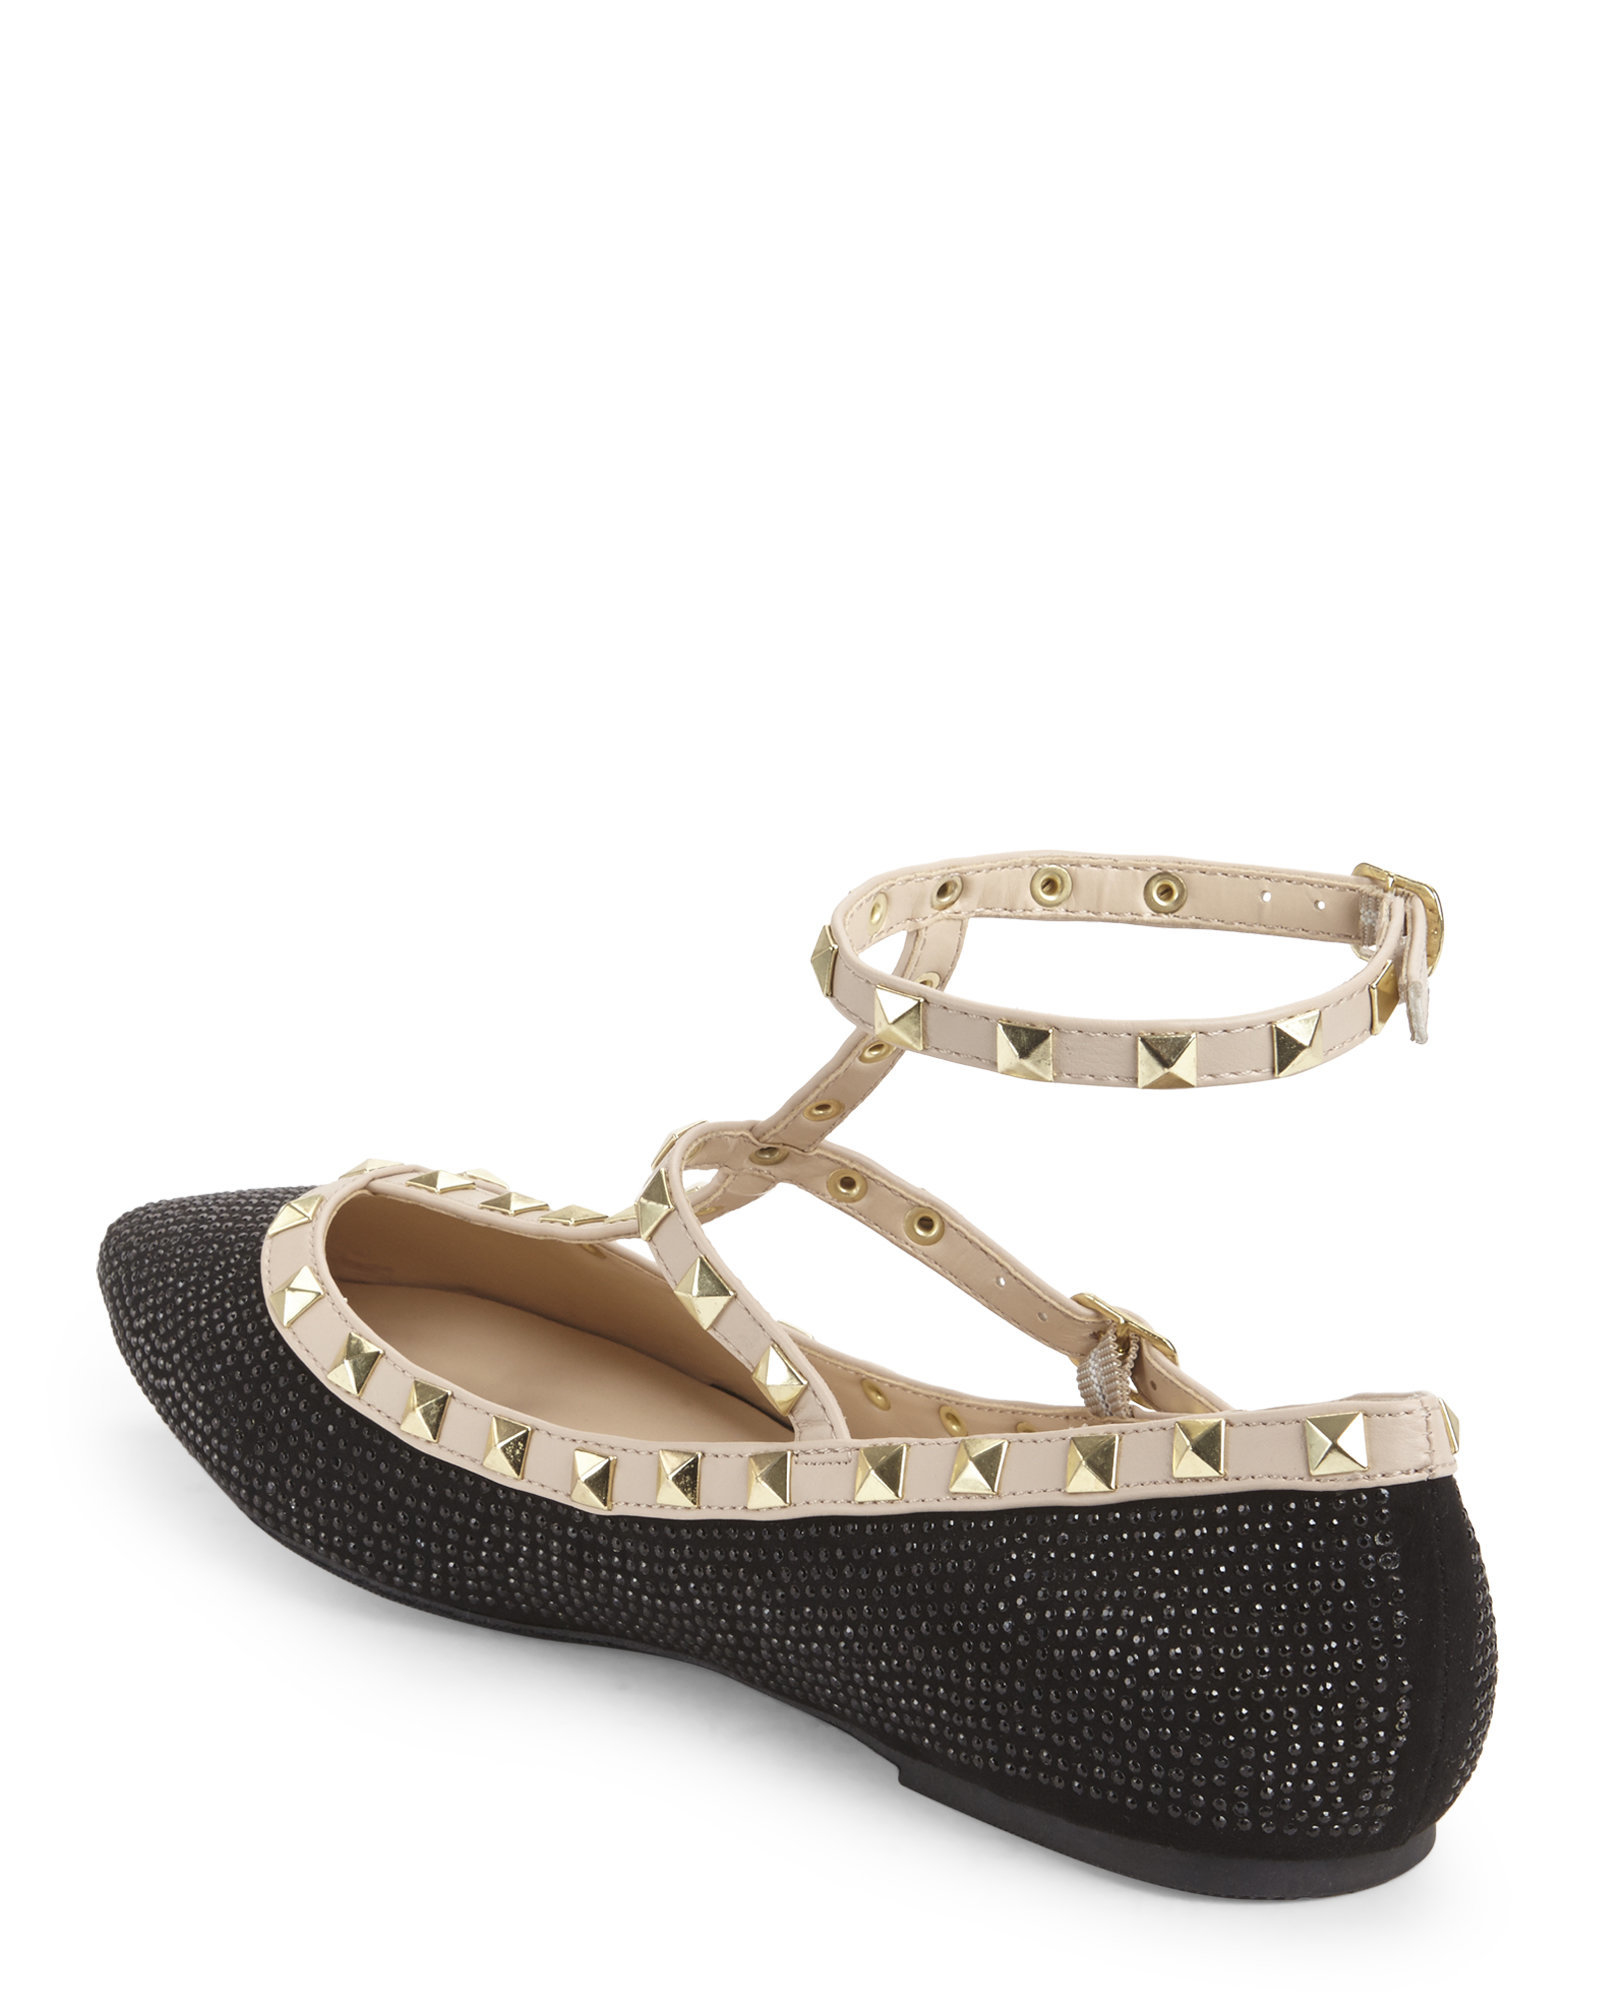 Lyst - Wild Diva Black Patent  Nude Pippa Studded T-Strap -5544